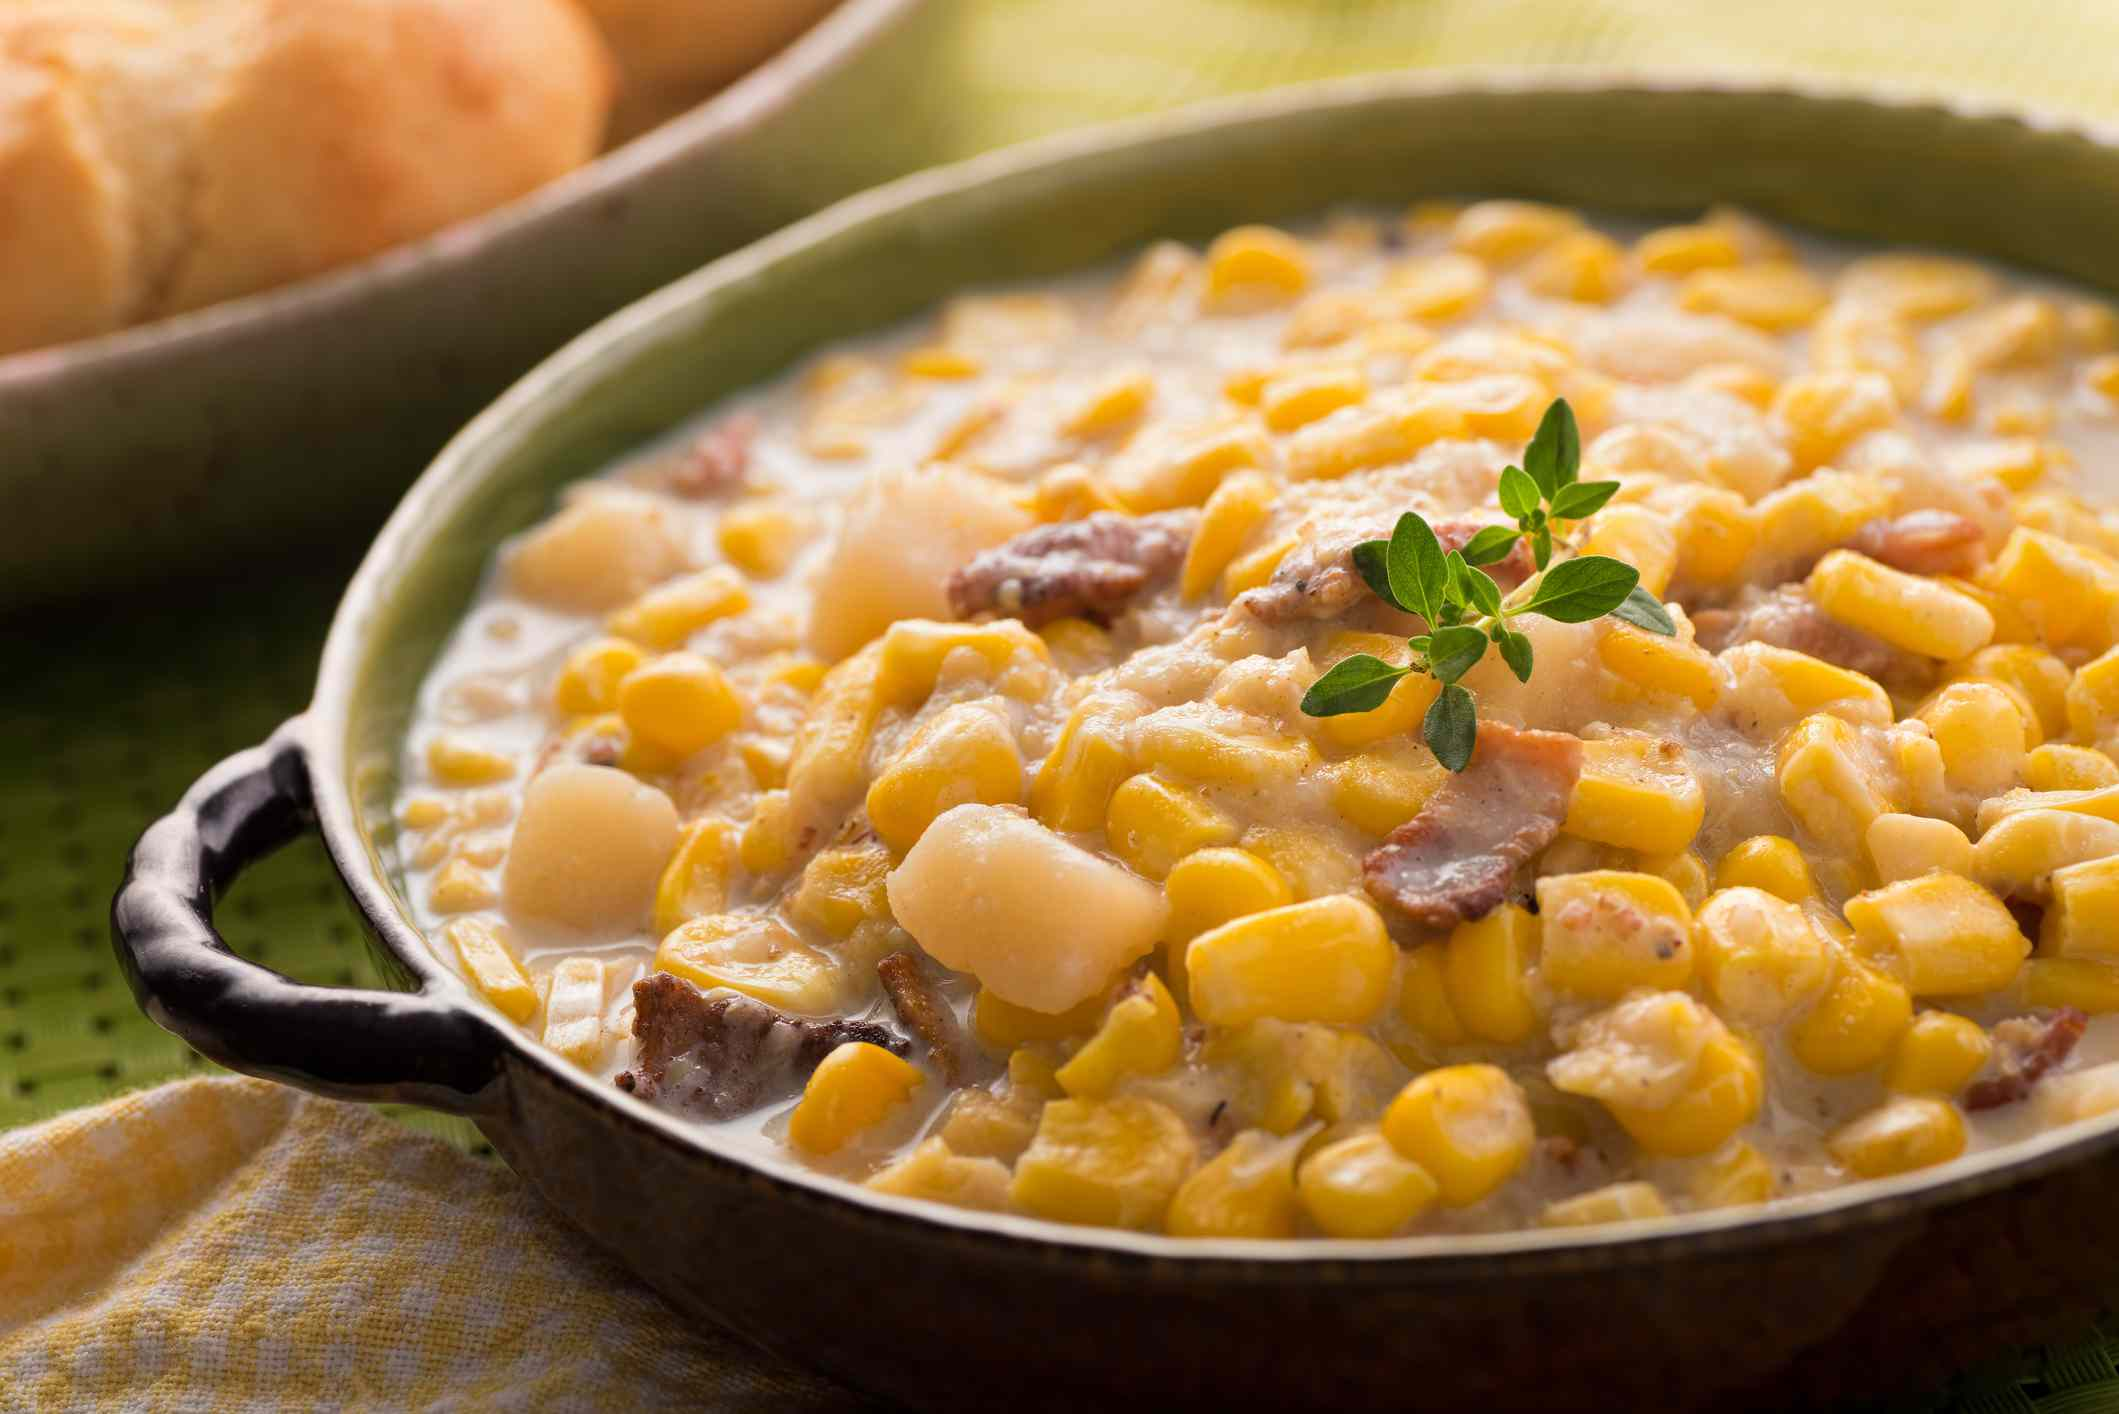 A bowl of homemade corn chowder with bacon, potato, and cheese biscuits